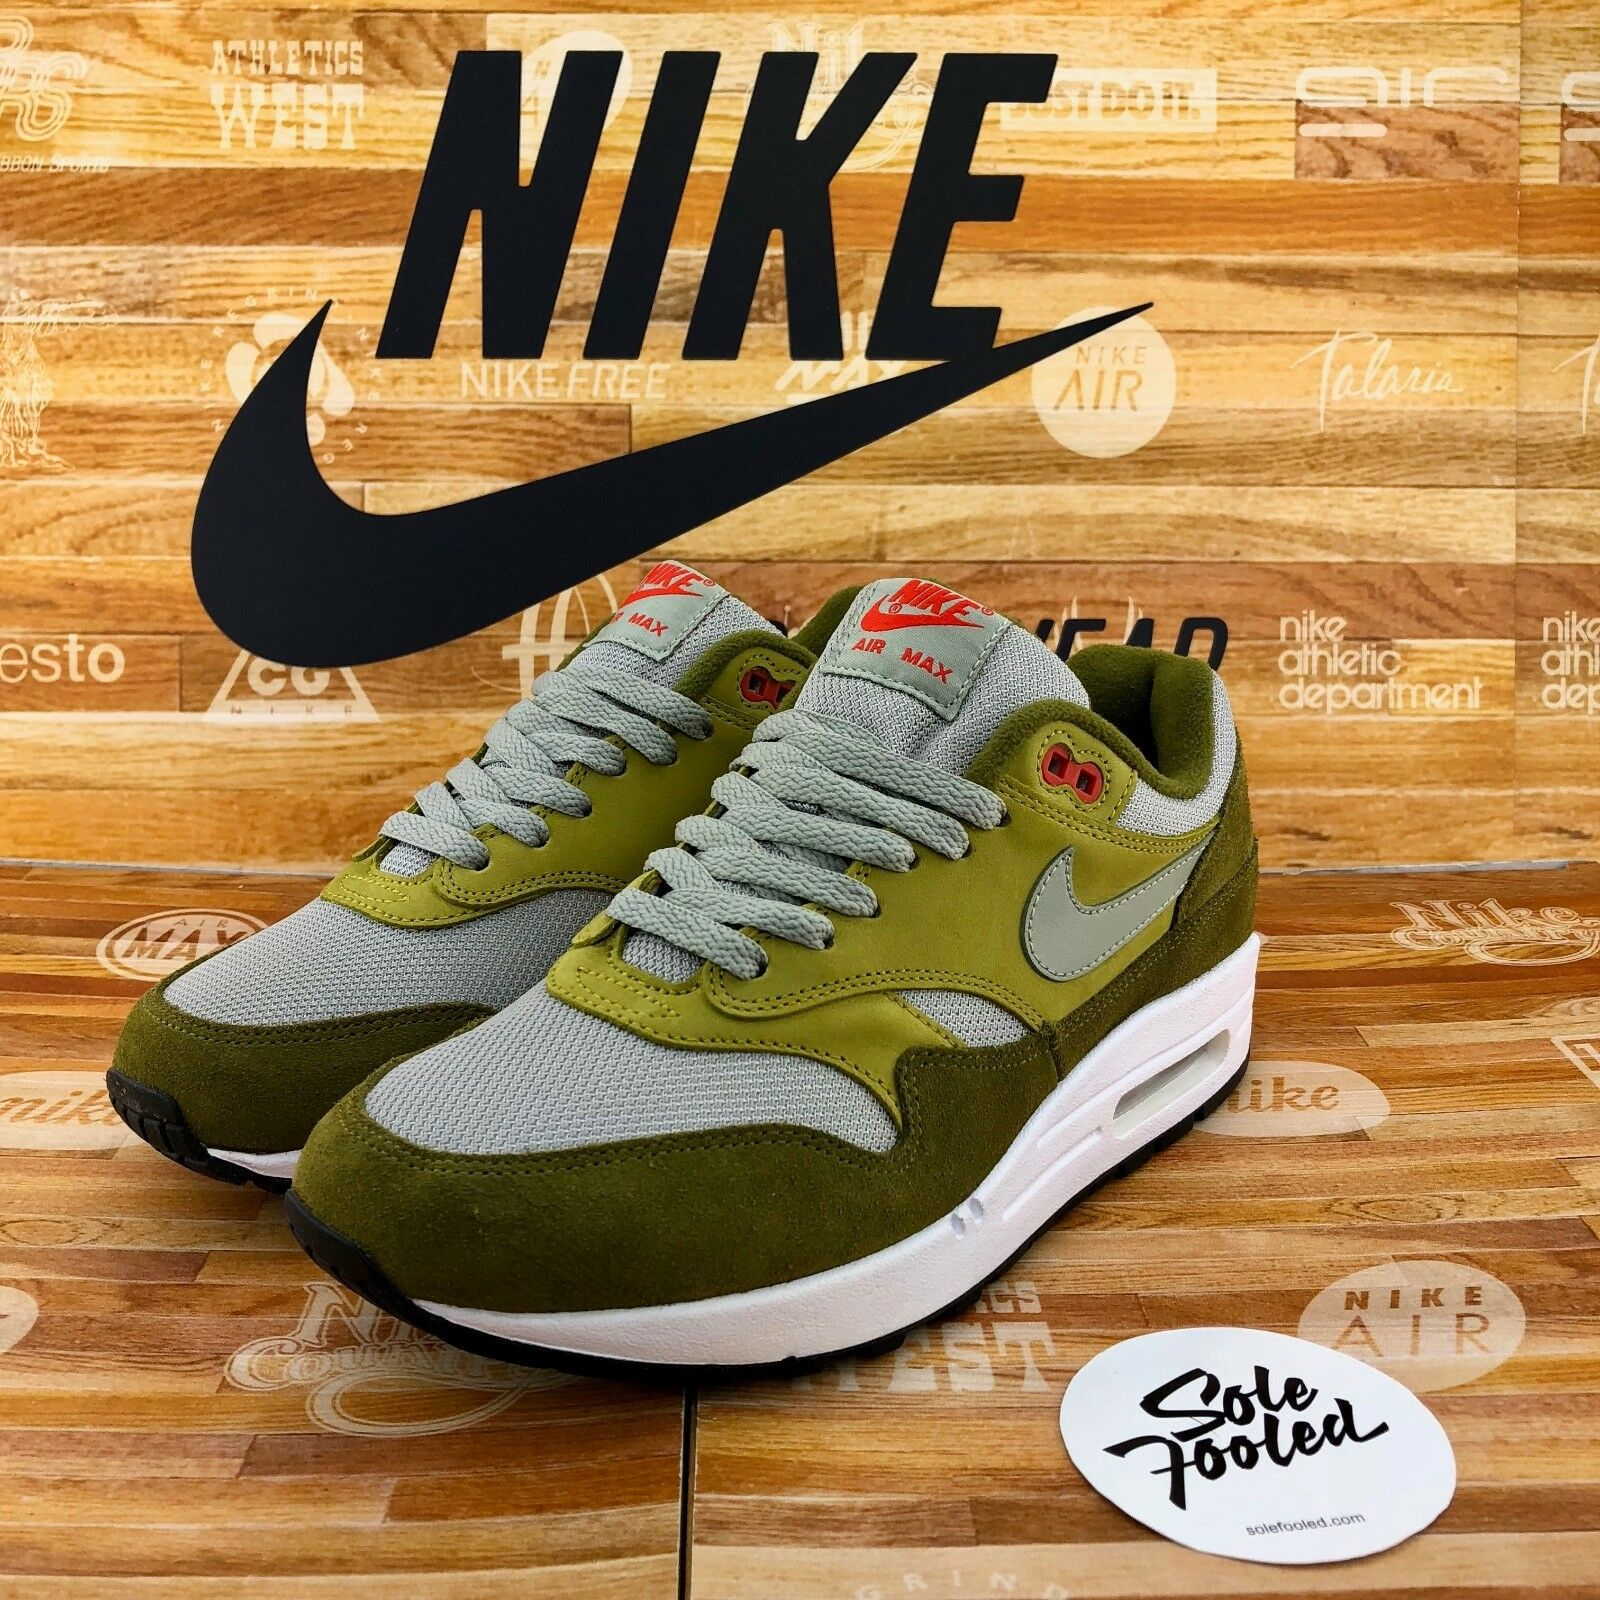 Nike Air Max 1 Premium Retro 908366 300 US 6 EU 38.5 Curry green OG 90 95 97 BW